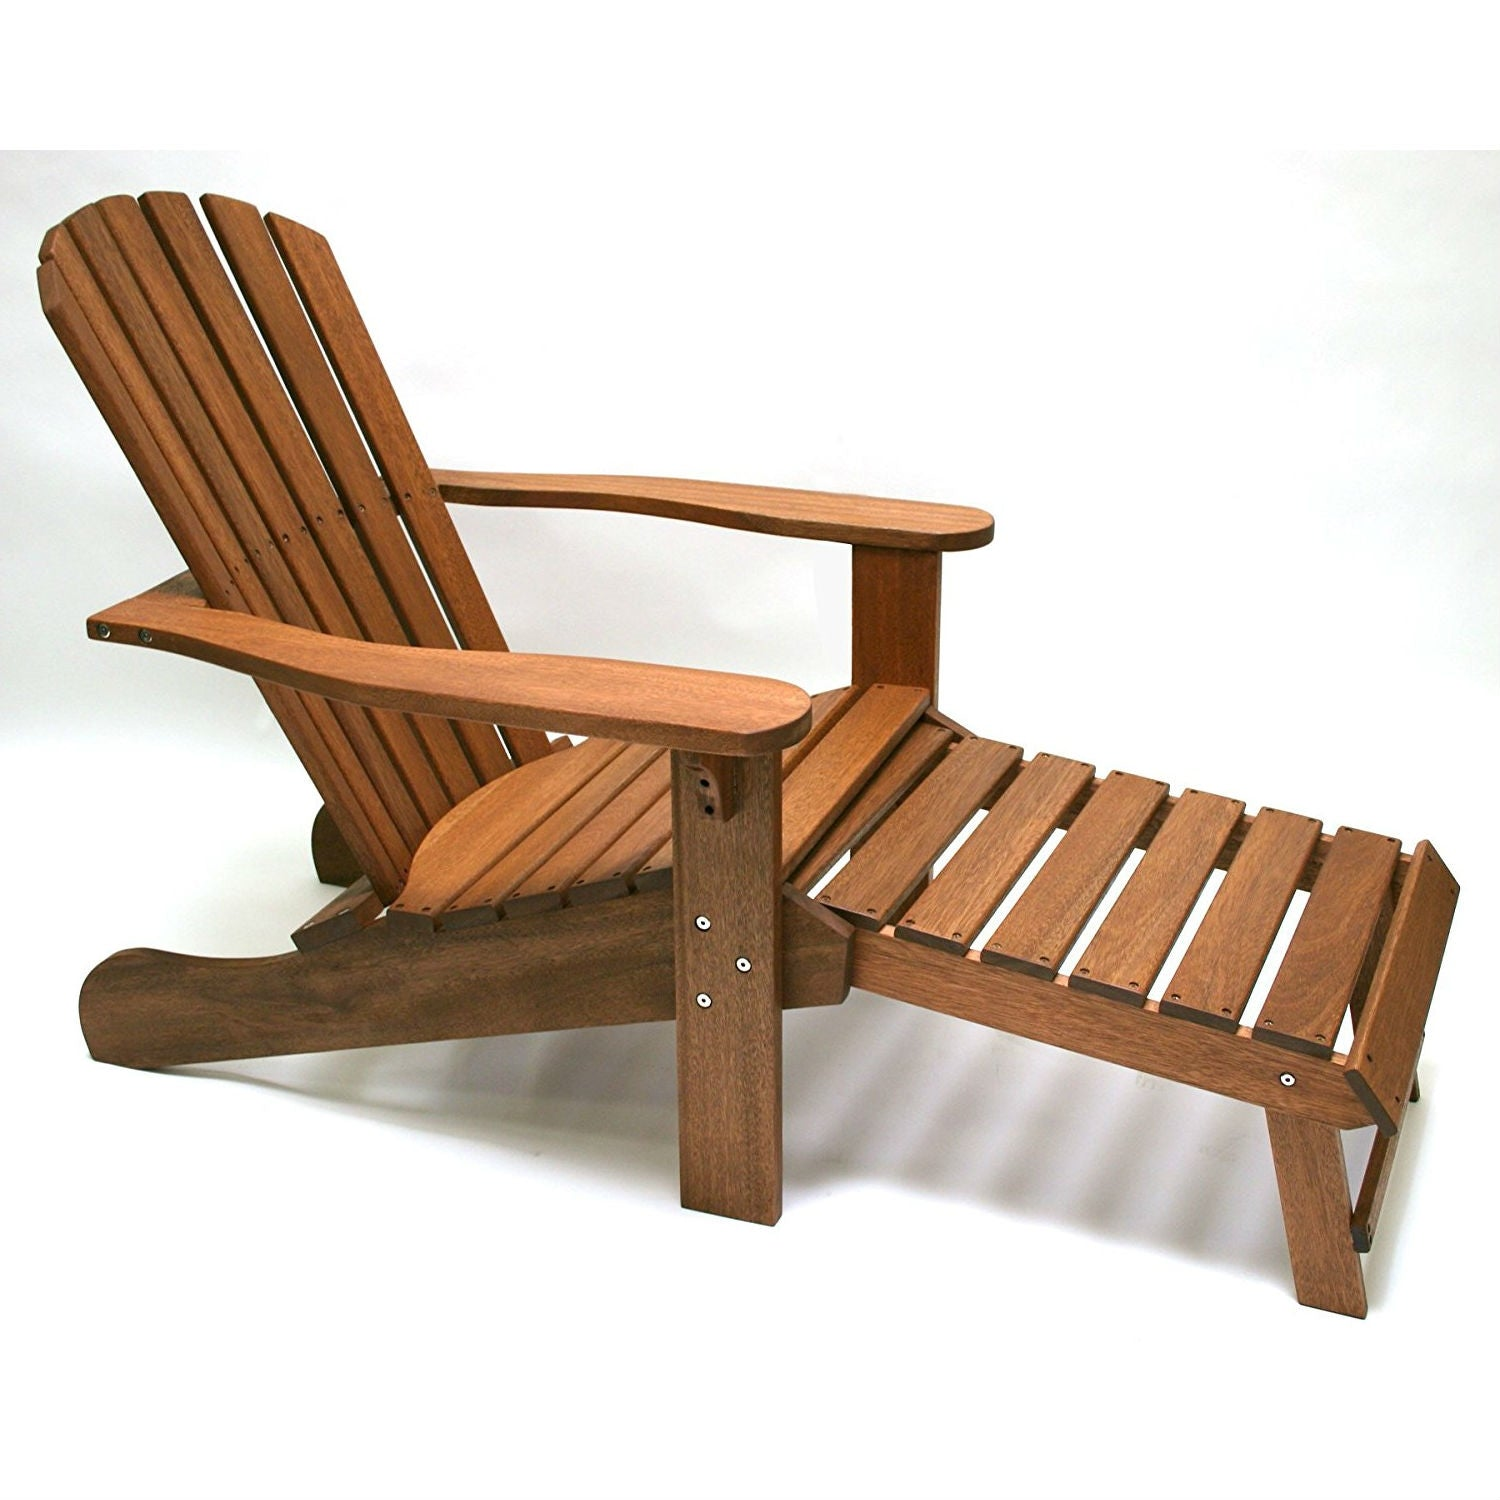 Pleasant Outdoor Eucalyptus Wood Patio Adirondack Chair With Slide Out Ottoman Cjindustries Chair Design For Home Cjindustriesco